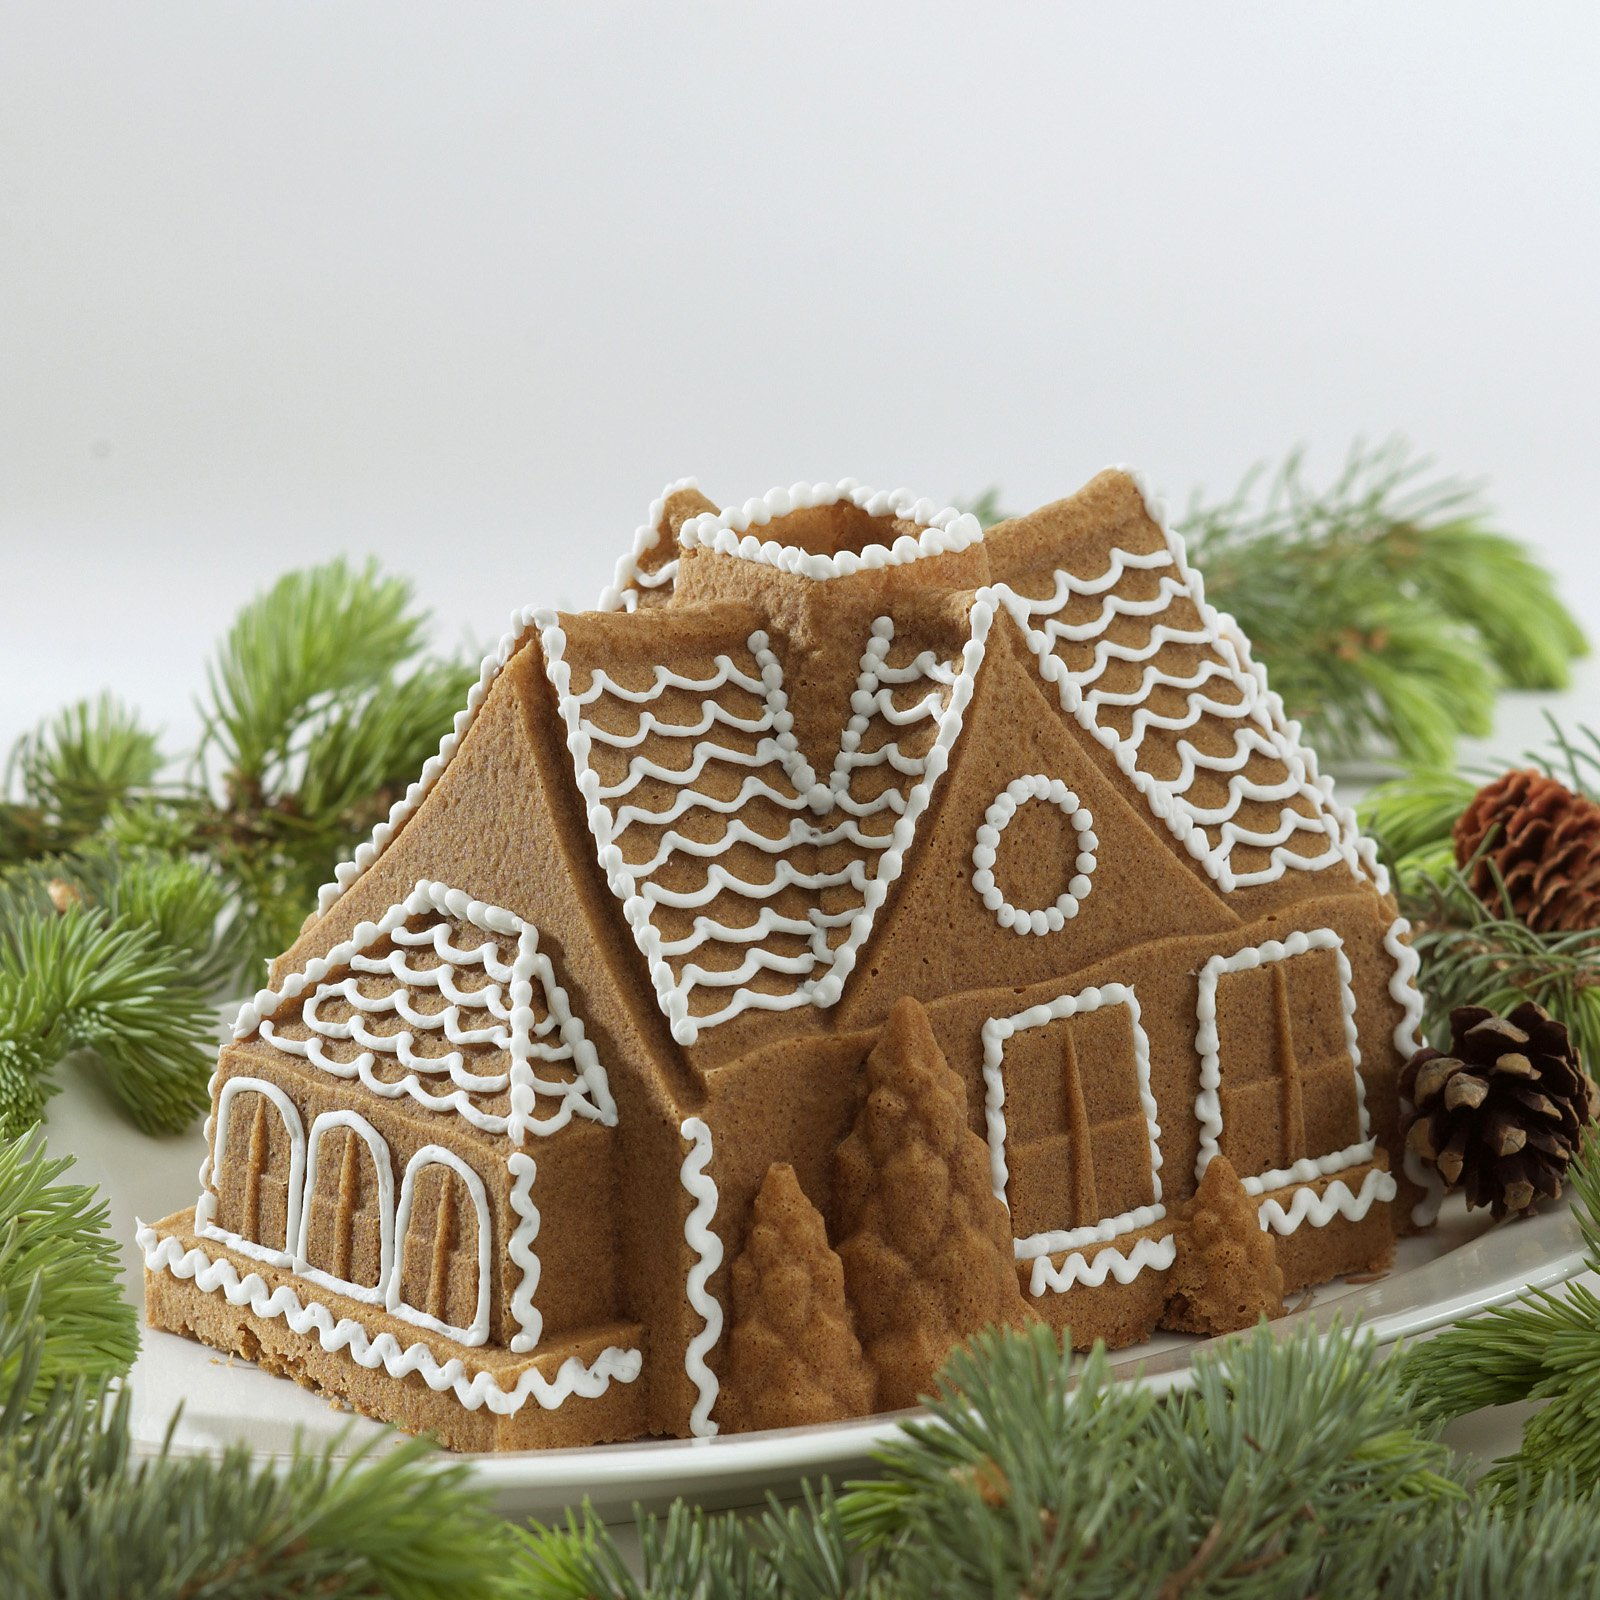 Nordic Ware Gingerbread House Bundt Pan by Nordicware